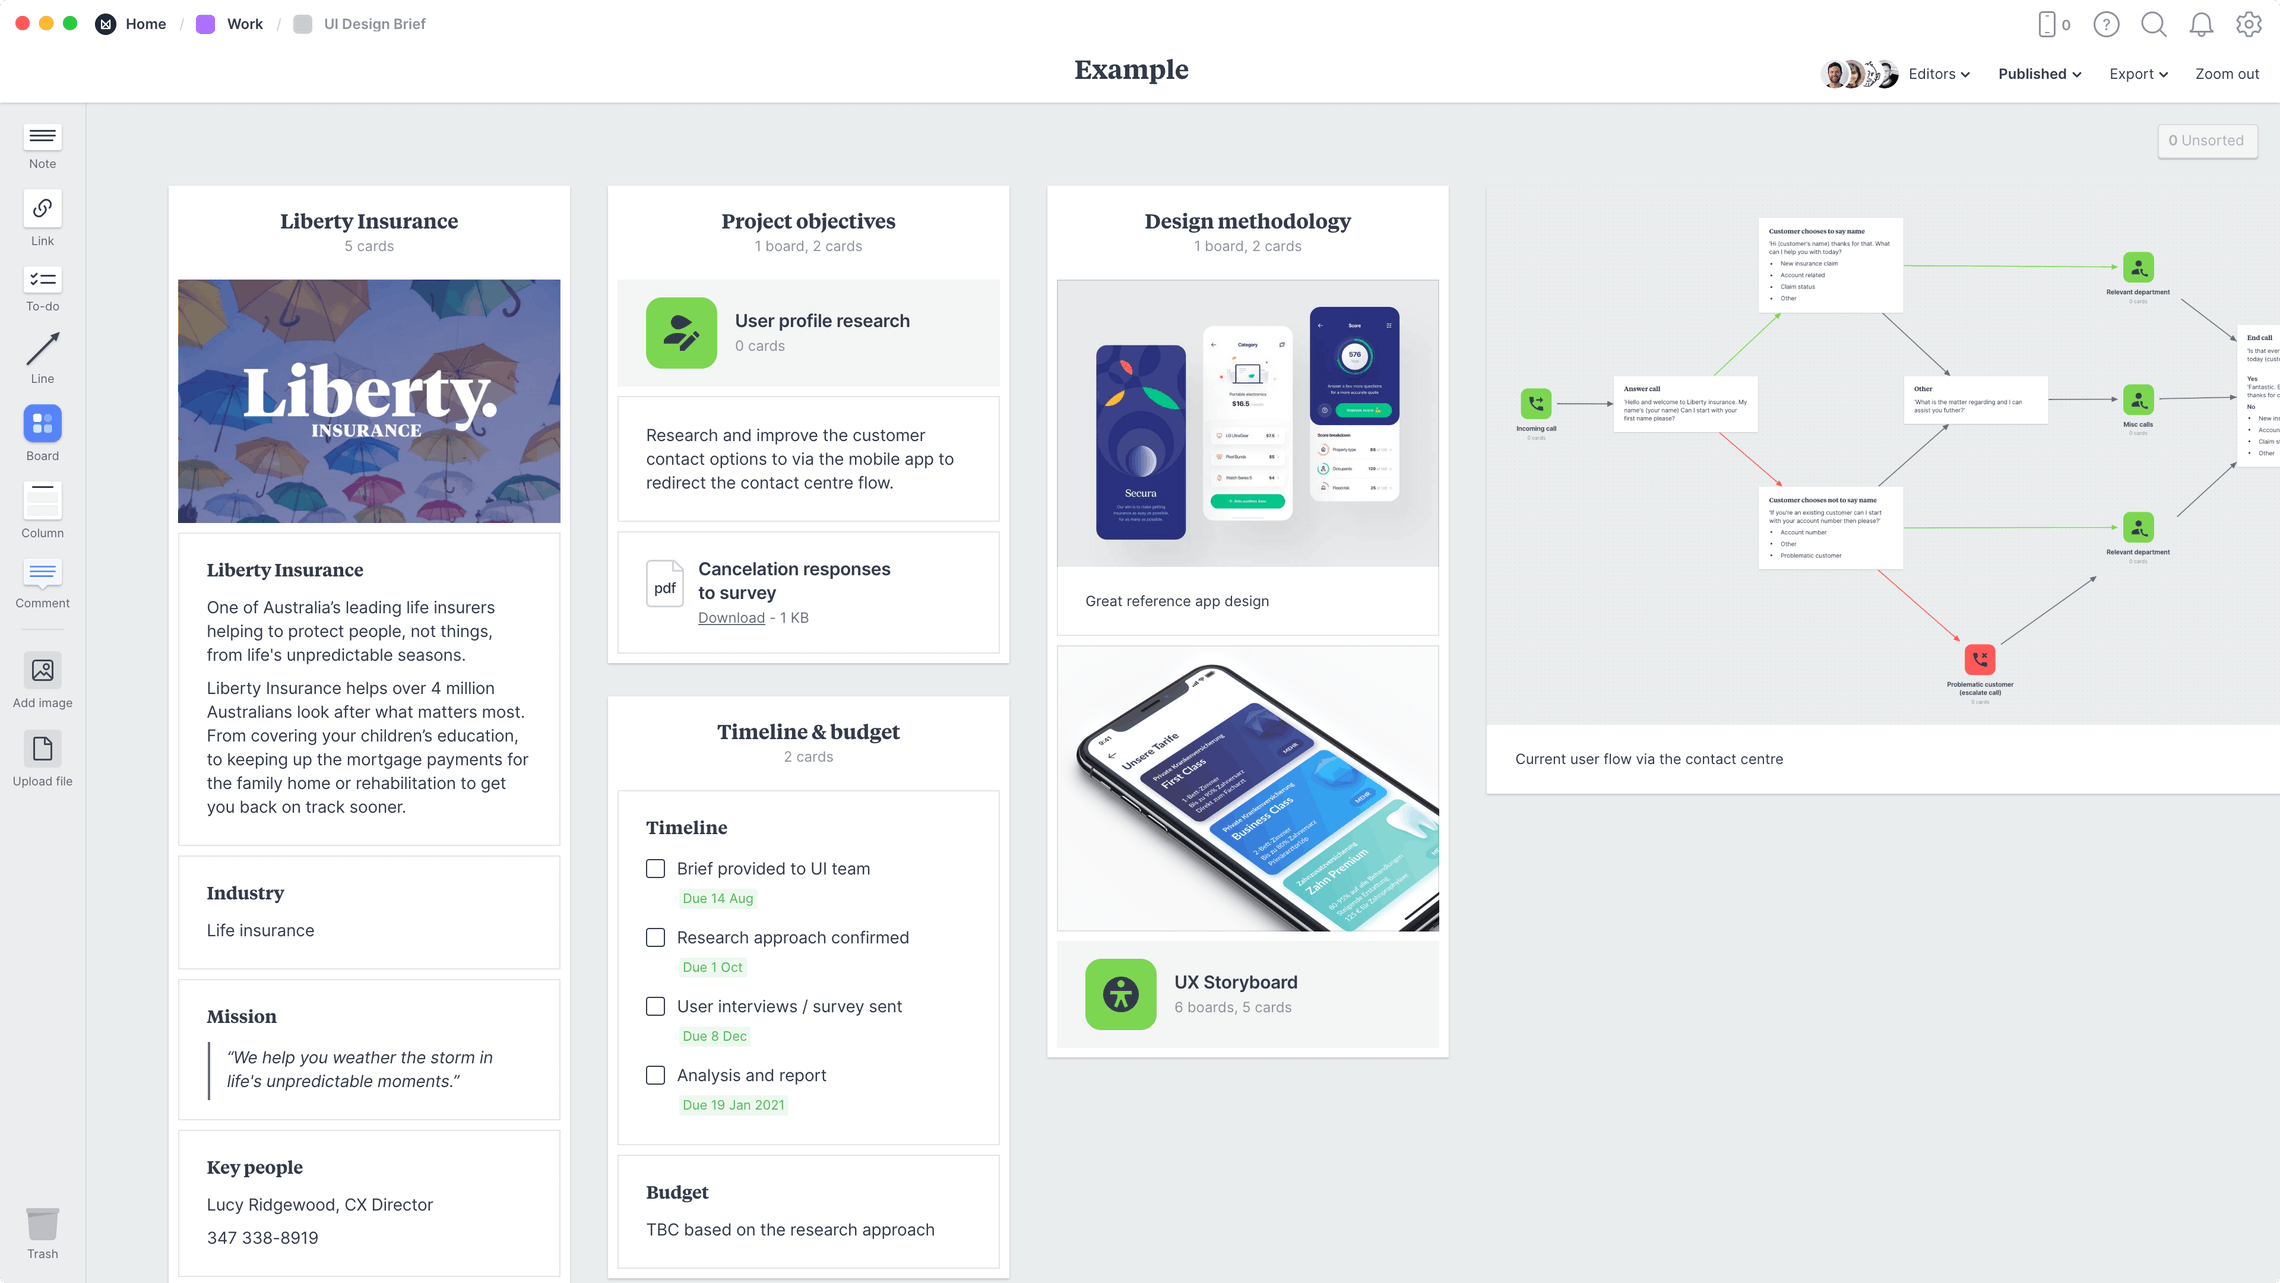 UI Design Brief Template, within the Milanote app